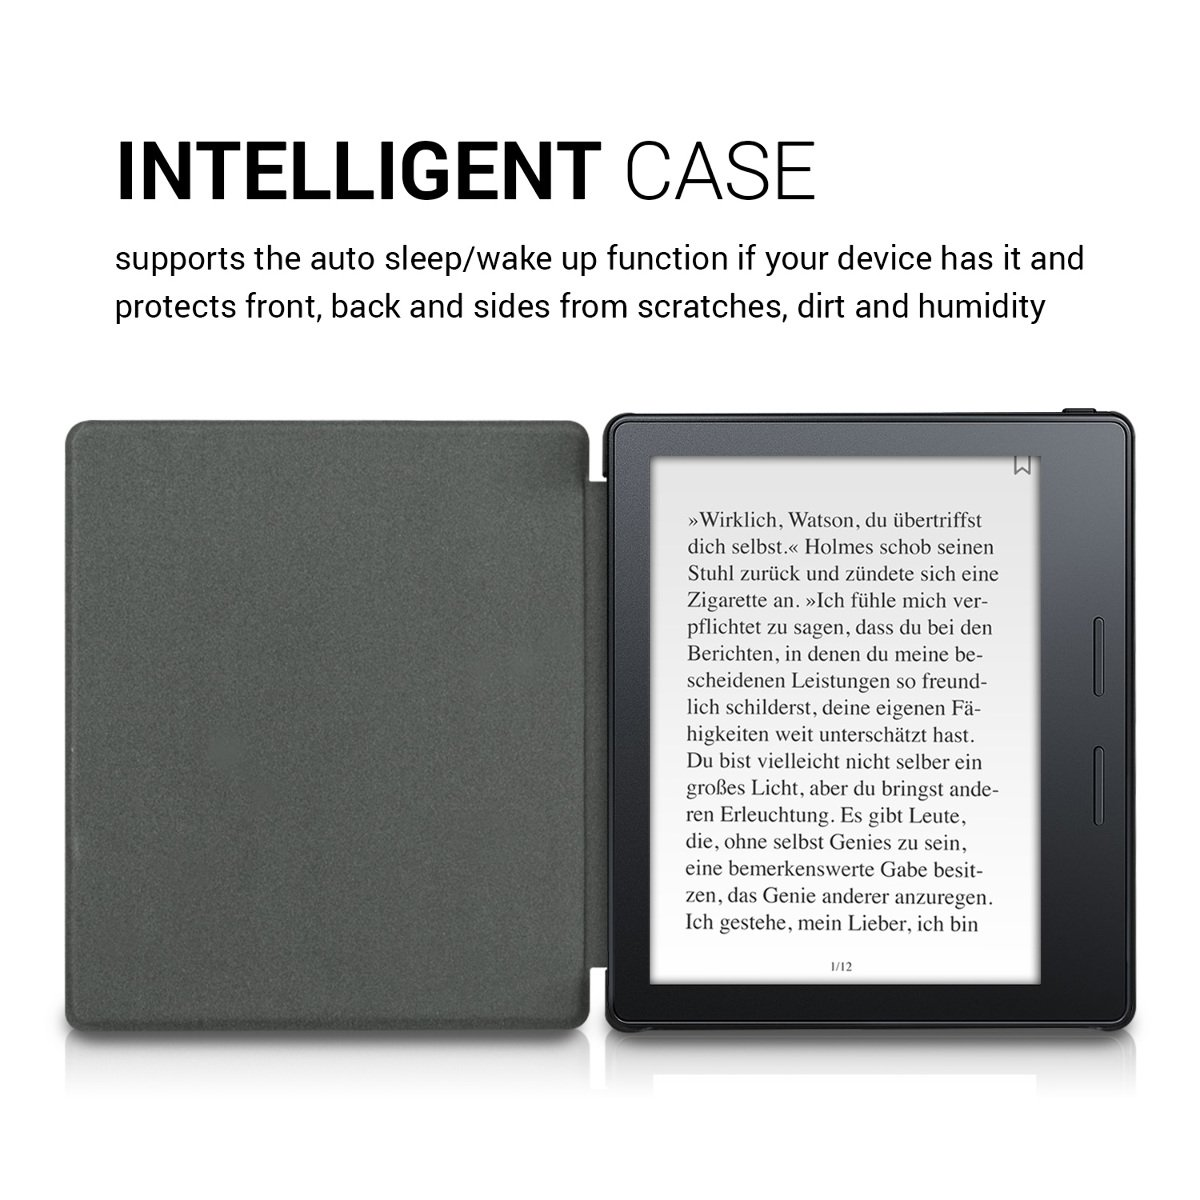 kwmobile Case for Amazon Kindle Oasis 8th Generation (2016) - Book Style PU Leather Protective e-Reader Cover Folio Case - White Black by kwmobile (Image #5)